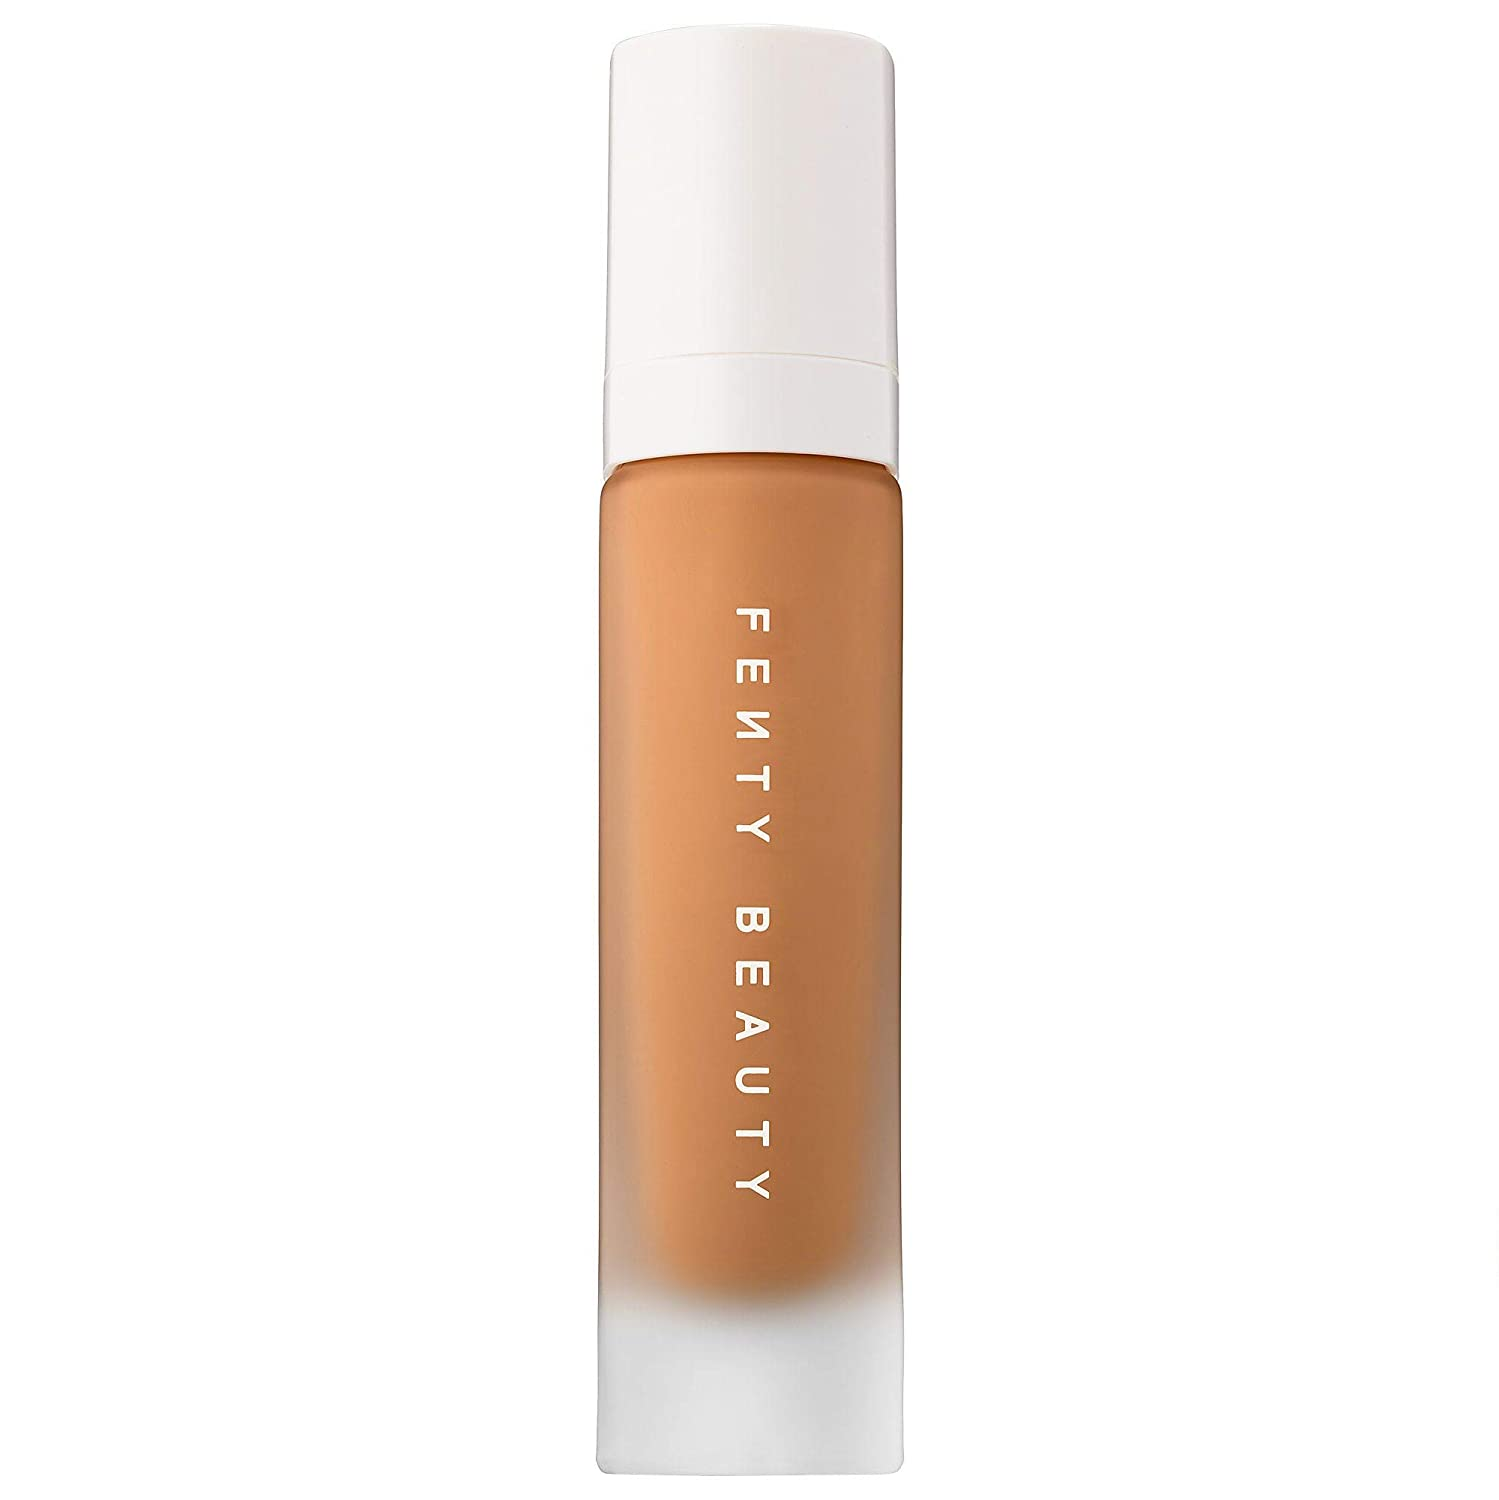 fenty beauty pro filt'r foundation, how to find your foundation color